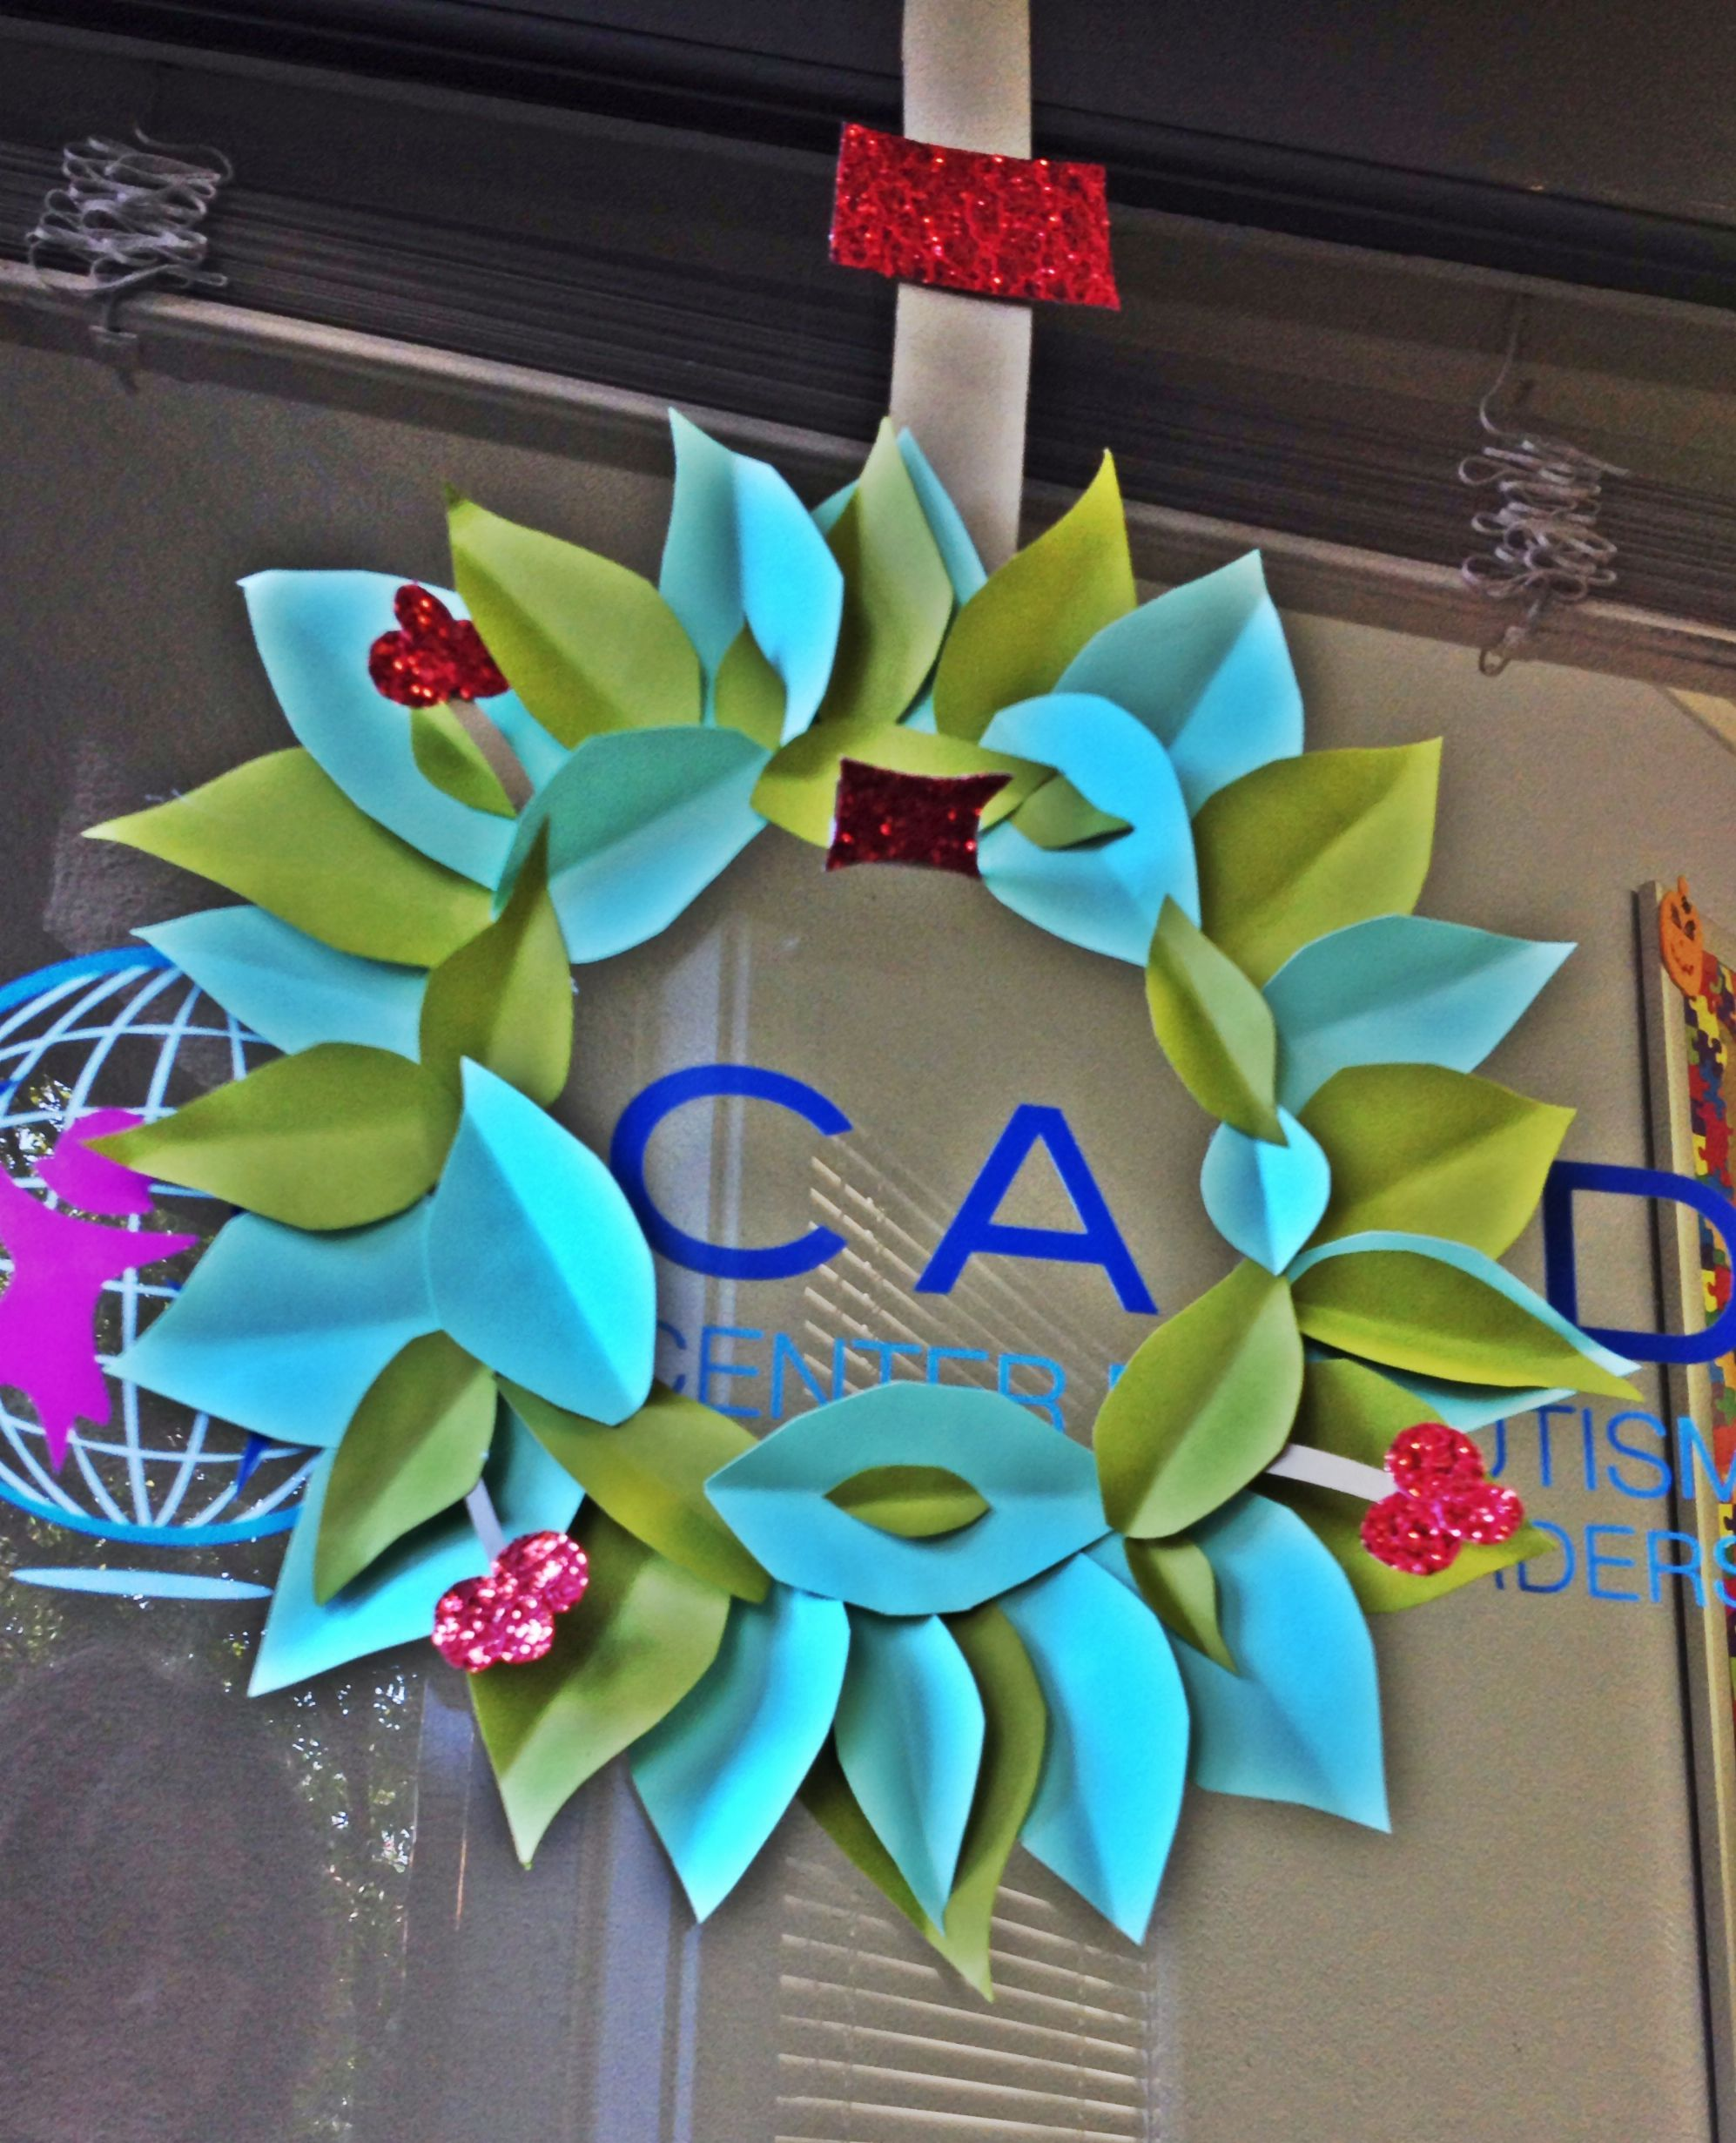 office holiday decor. Paper Christmas Wreaths · Holiday DecorChristmas Office Decor I